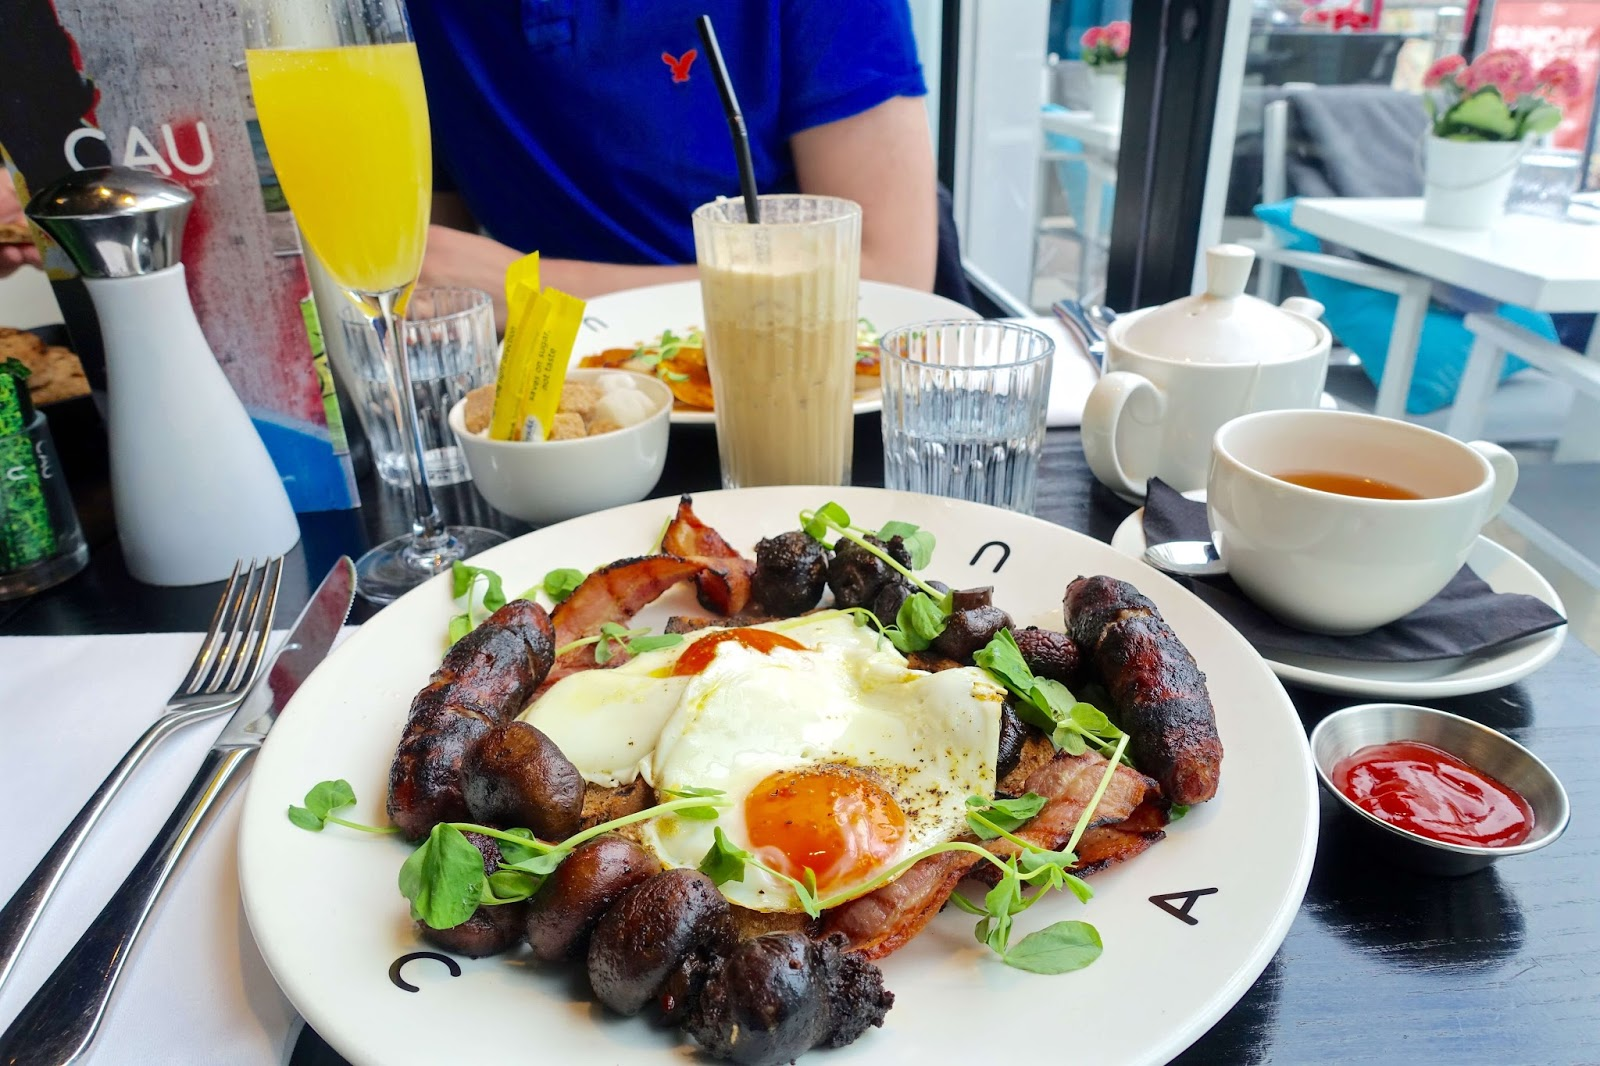 Full english breakfast at CAU with black pudding